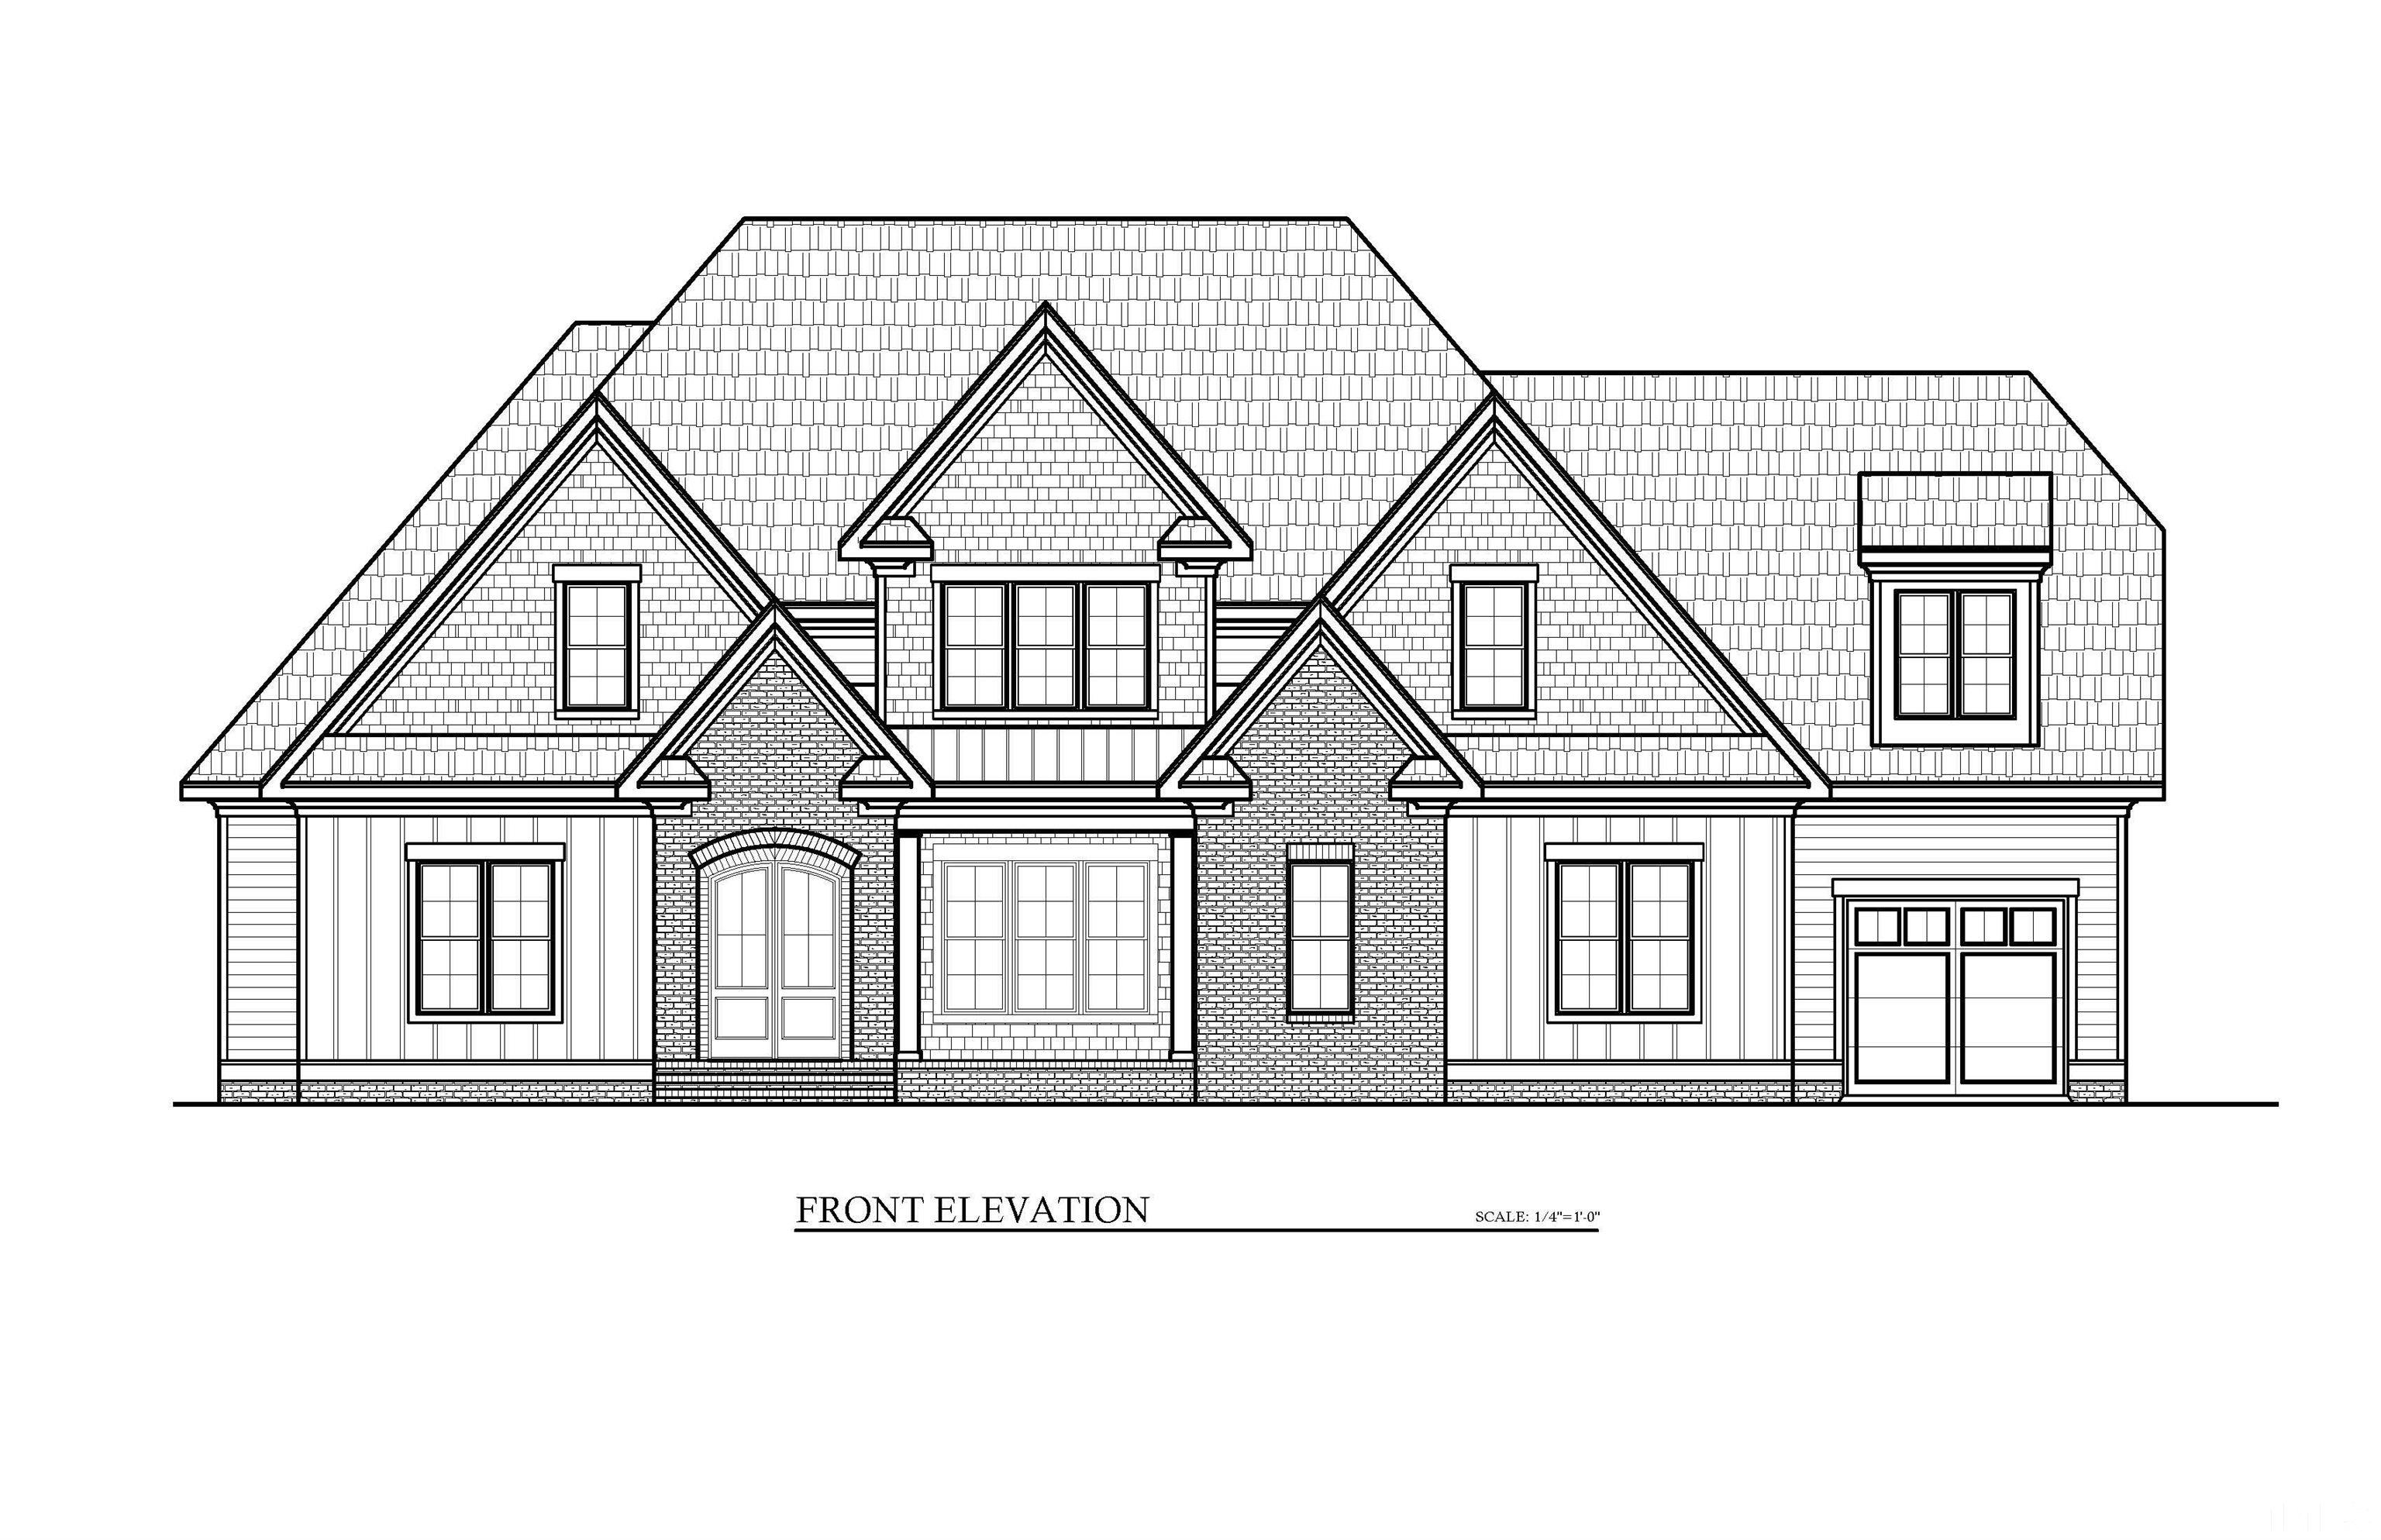 Opportunity to build your custom home in desirable Midtown North Hills area on level lot.  Customer may choose or design their own plan for this lot.  Builder may start spec house on lot first of 2022.